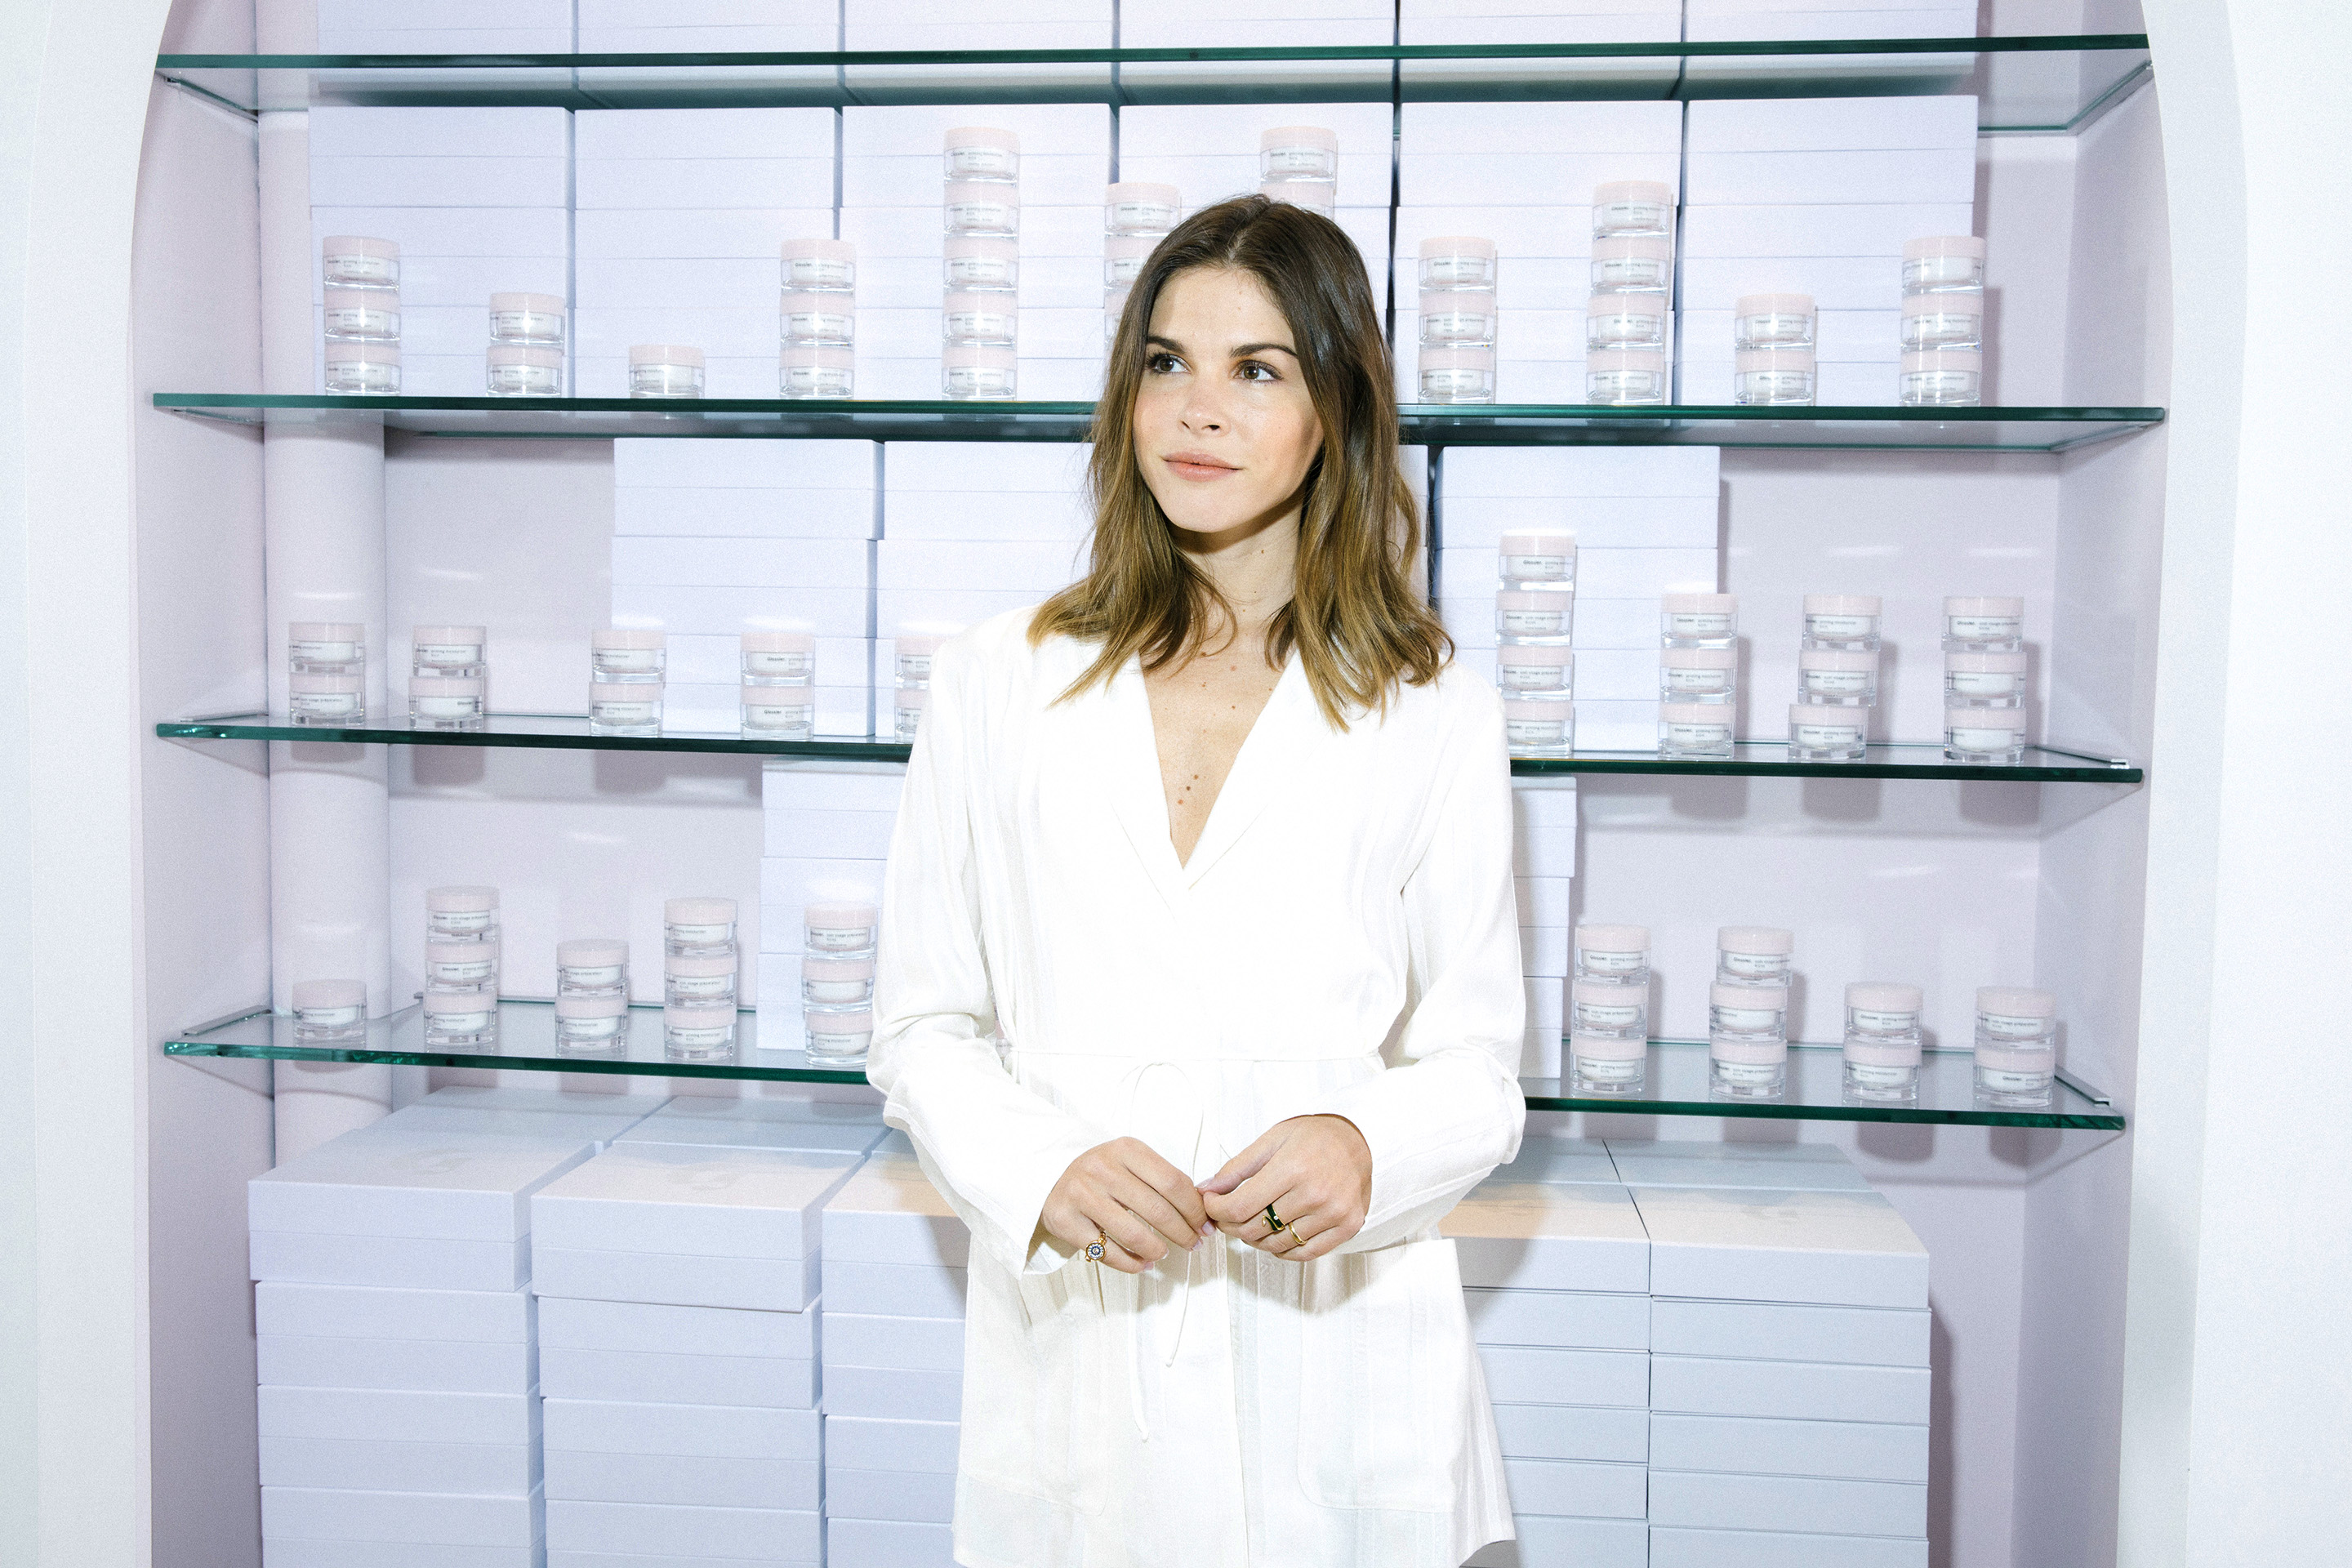 Emily Weiss, founder and CEO of Into The Gloss and Glossier